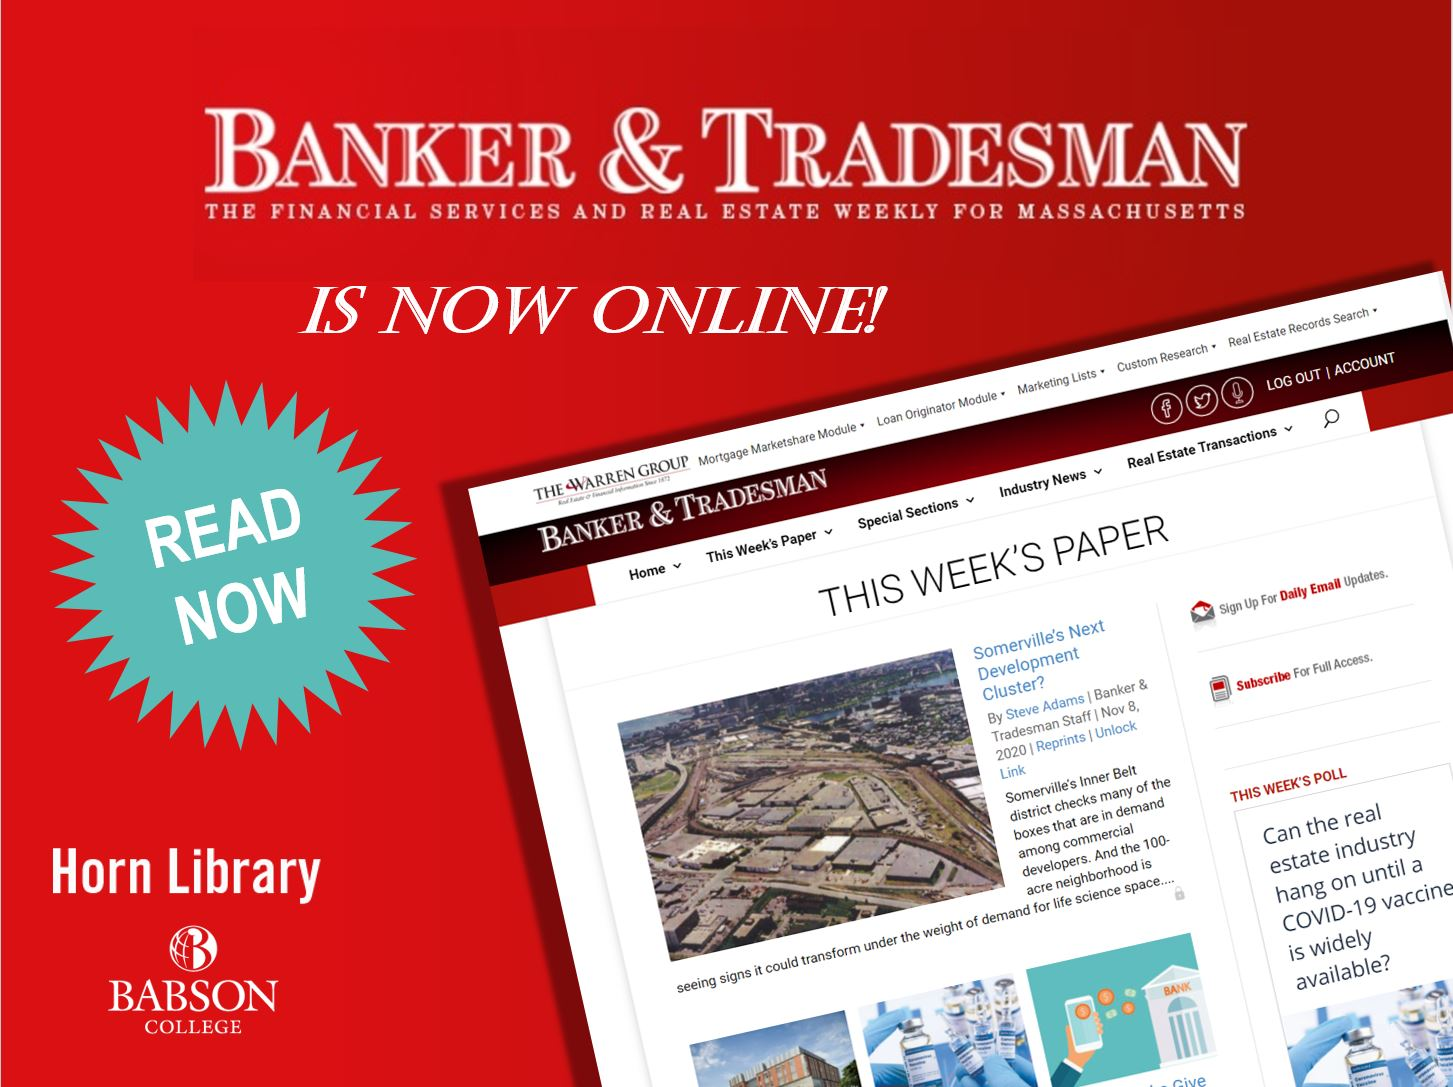 Banker & Tradesman is now online! Read Now